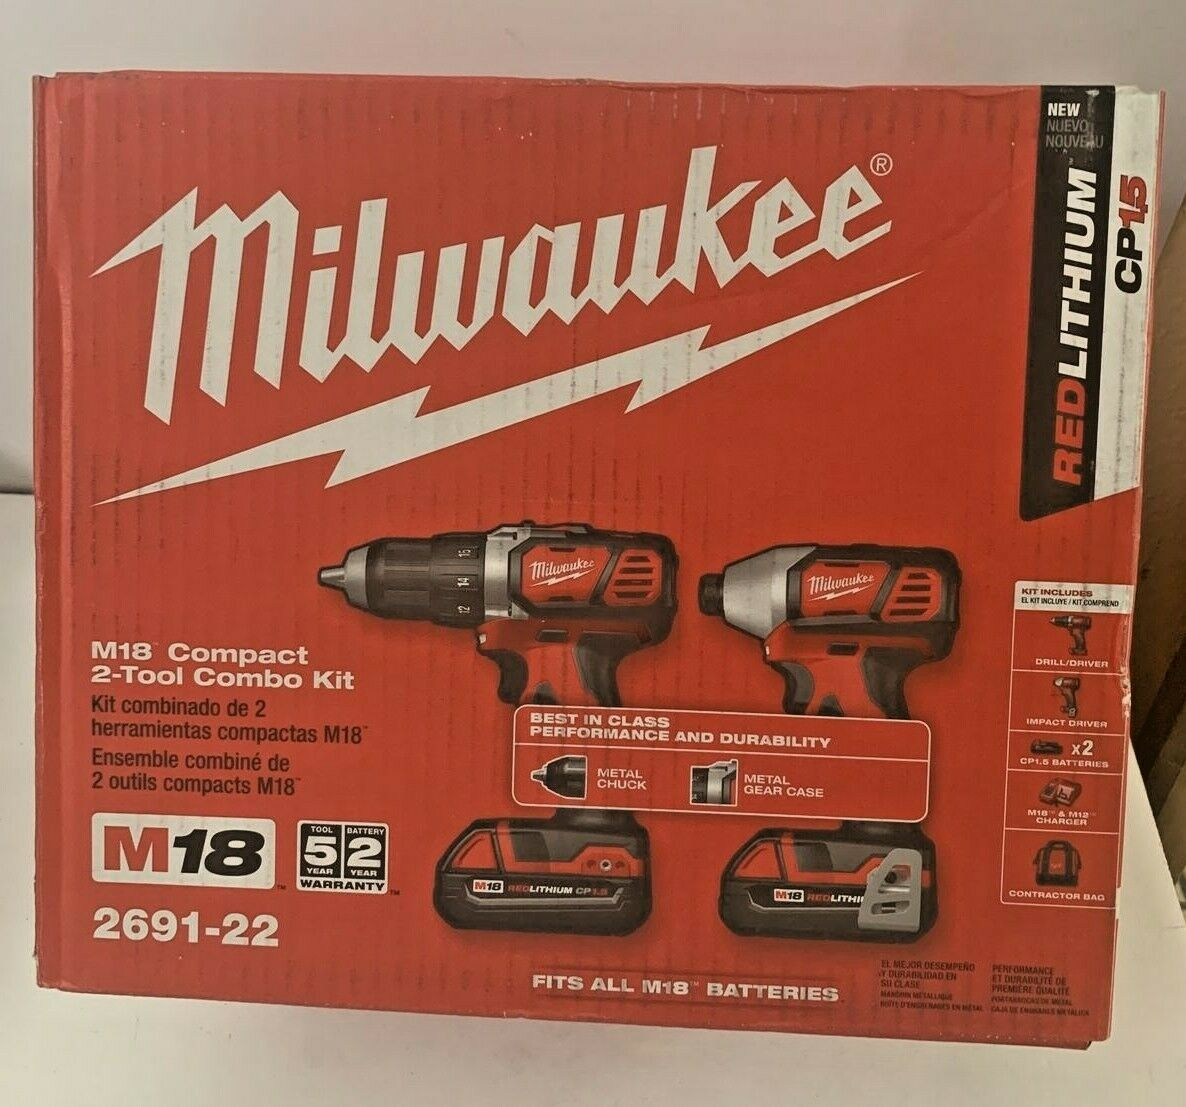 New Milwaukee 2691-22 M18 18-Volt Cordless Power Lithium-Ion